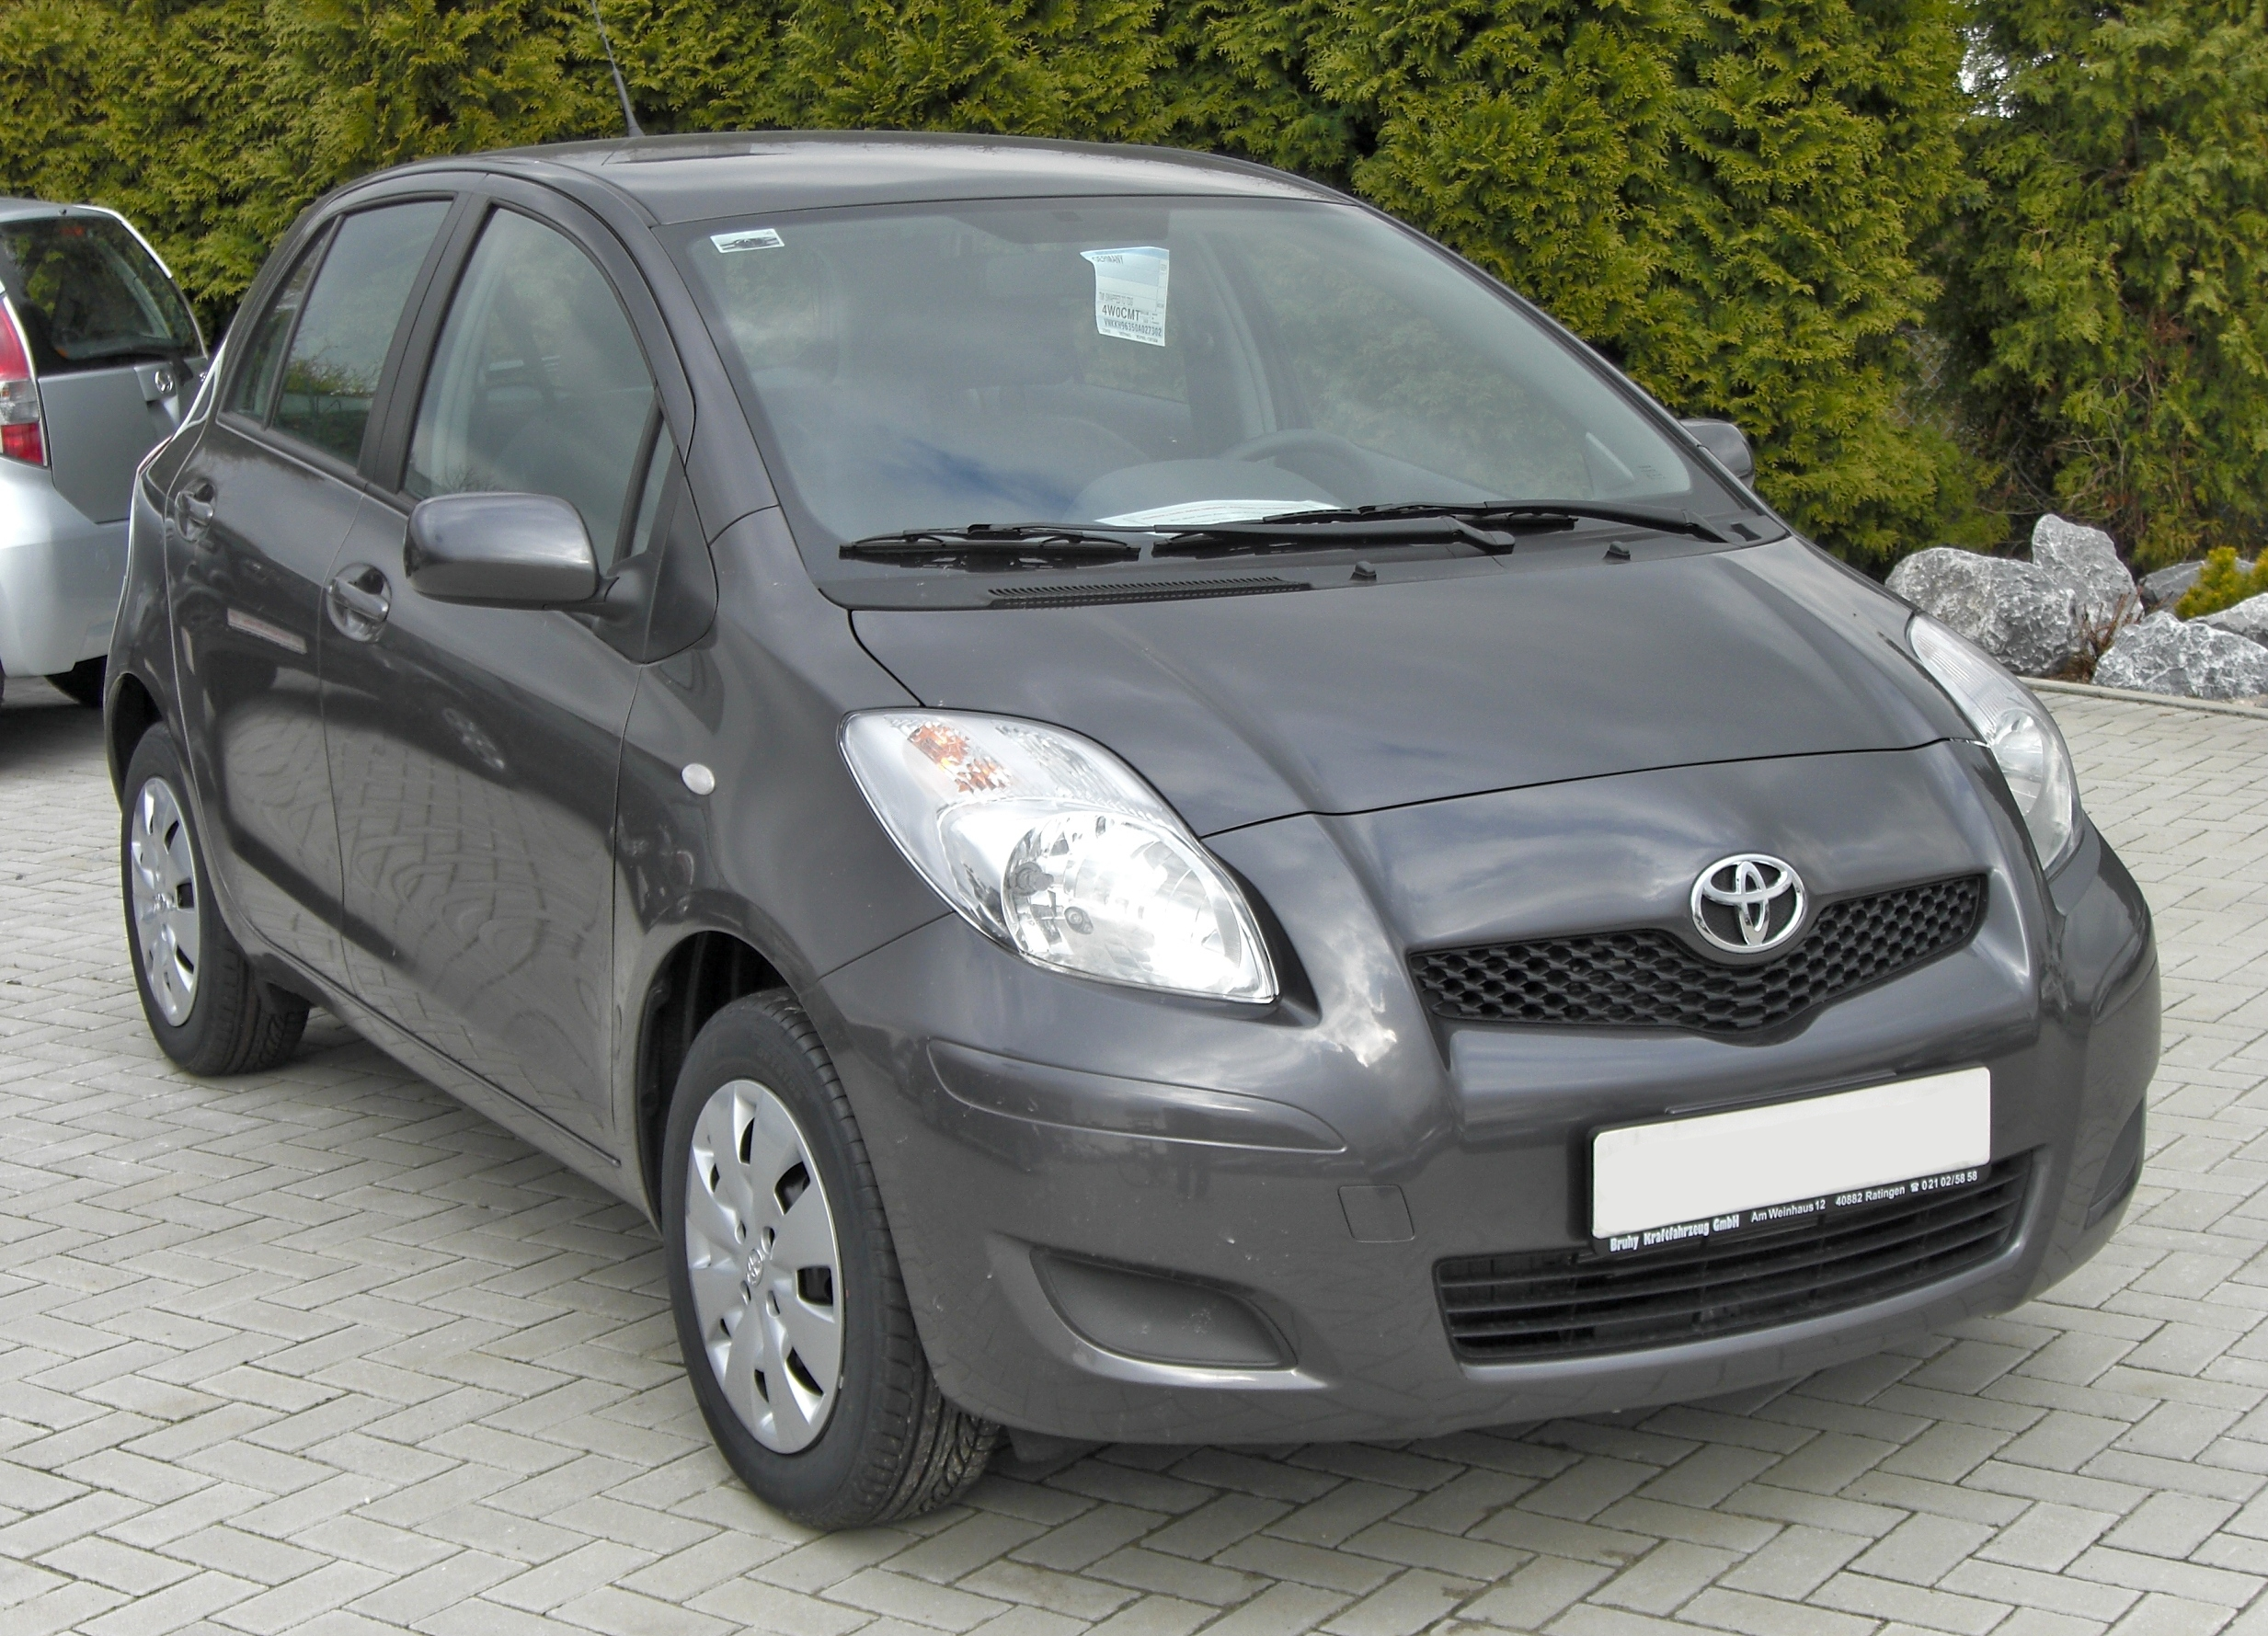 file toyota yaris ii facelift 20090314 wikimedia commons. Black Bedroom Furniture Sets. Home Design Ideas